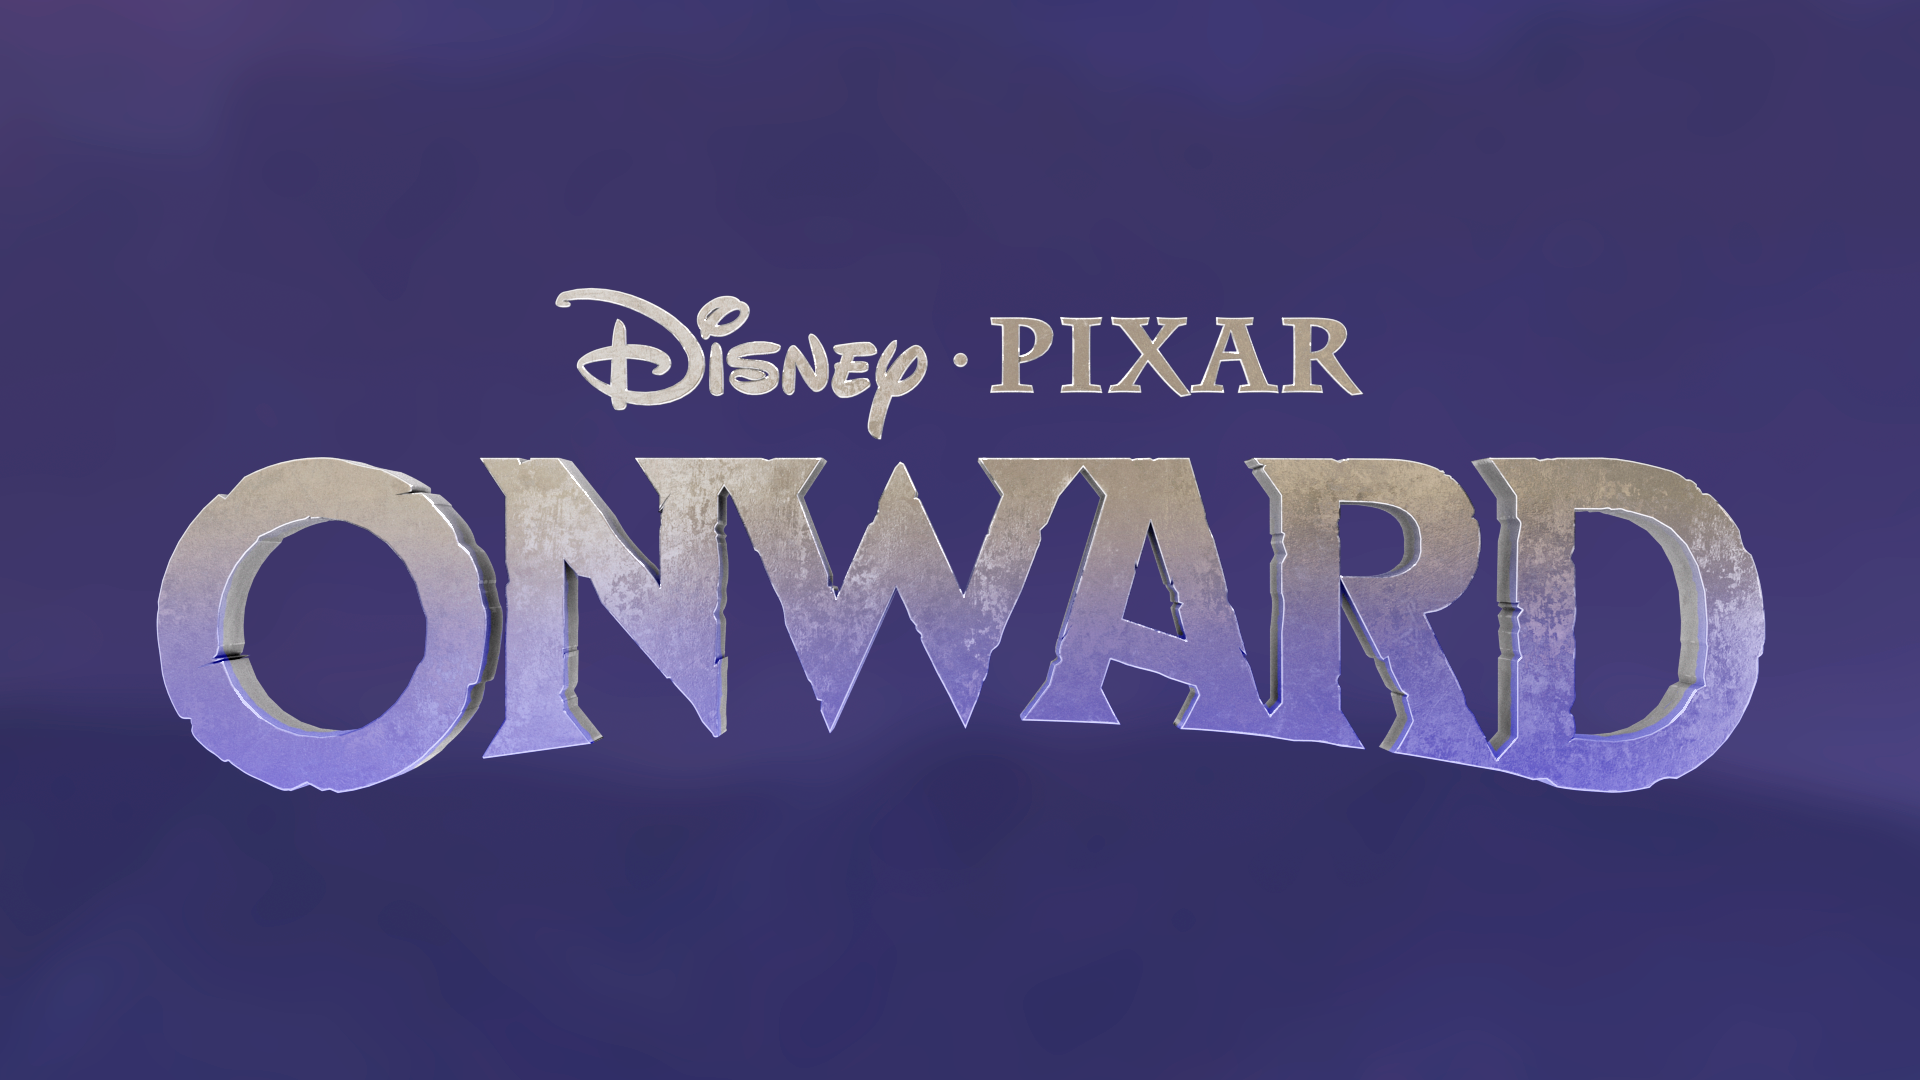 Disney/Pixar Onward Title Treatments